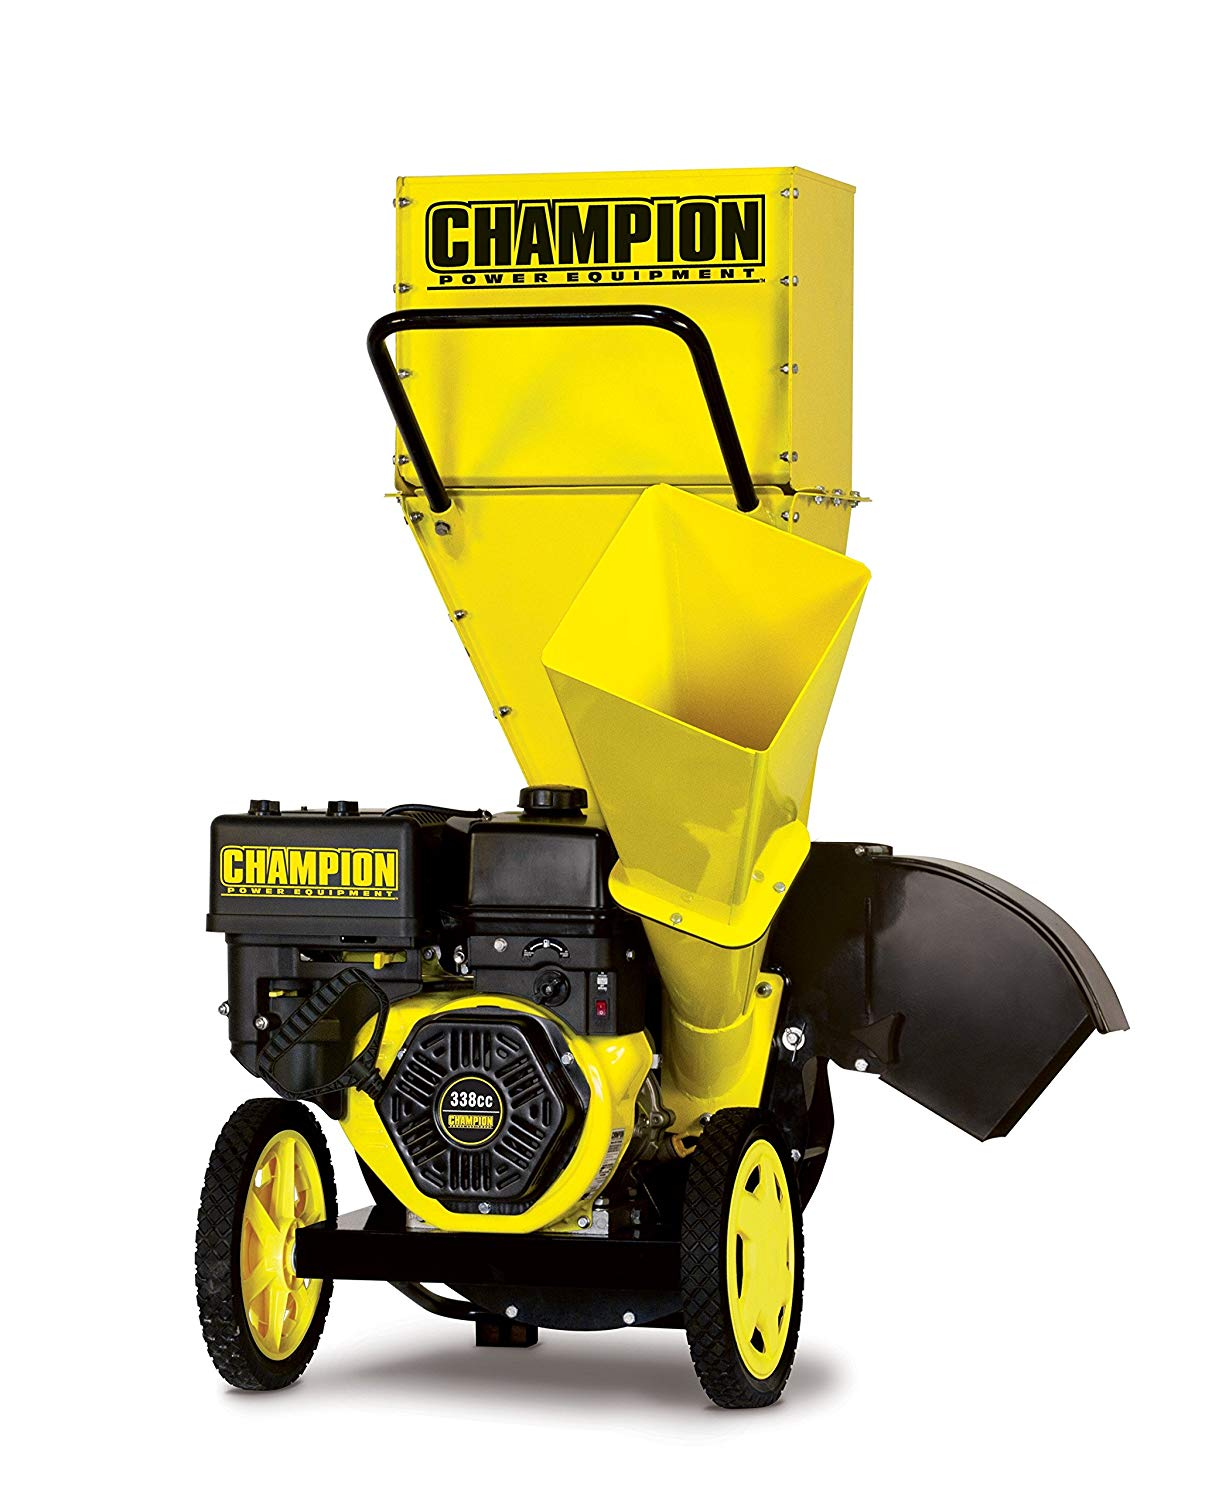 Champion 3-Inch Portable Chipper-Shredder with Collection Bag - chipper shredders